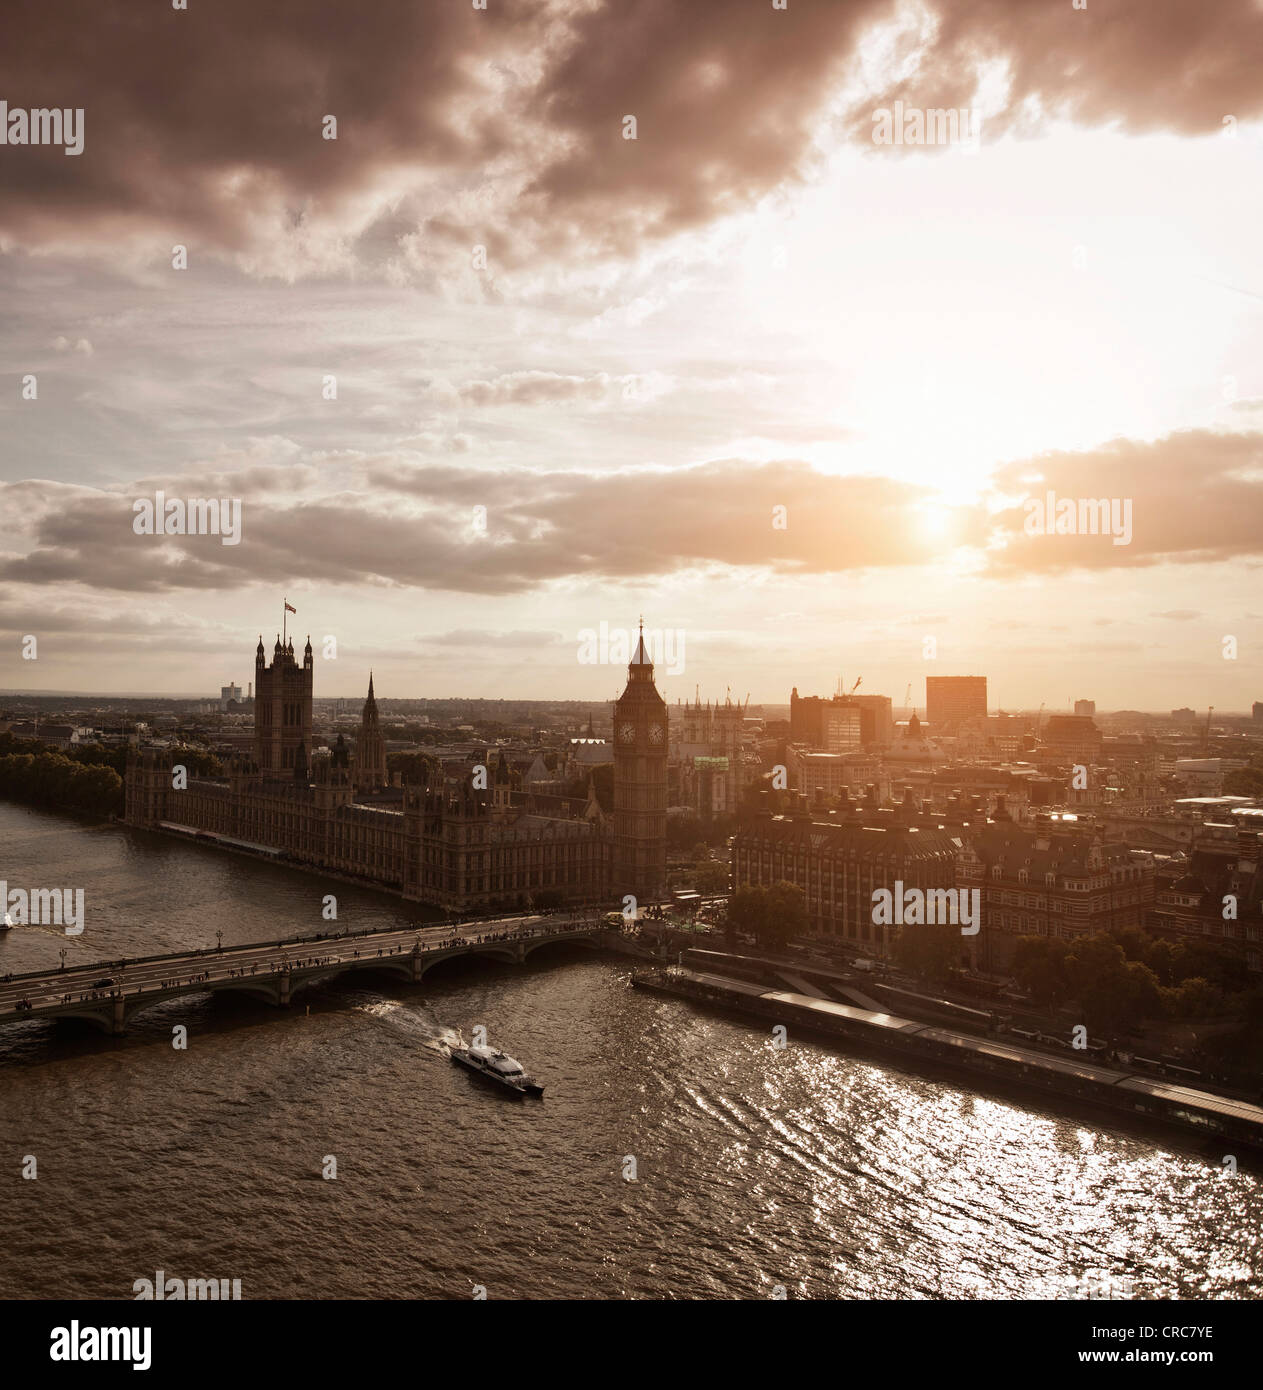 Aerial view of Westminster in London - Stock Image